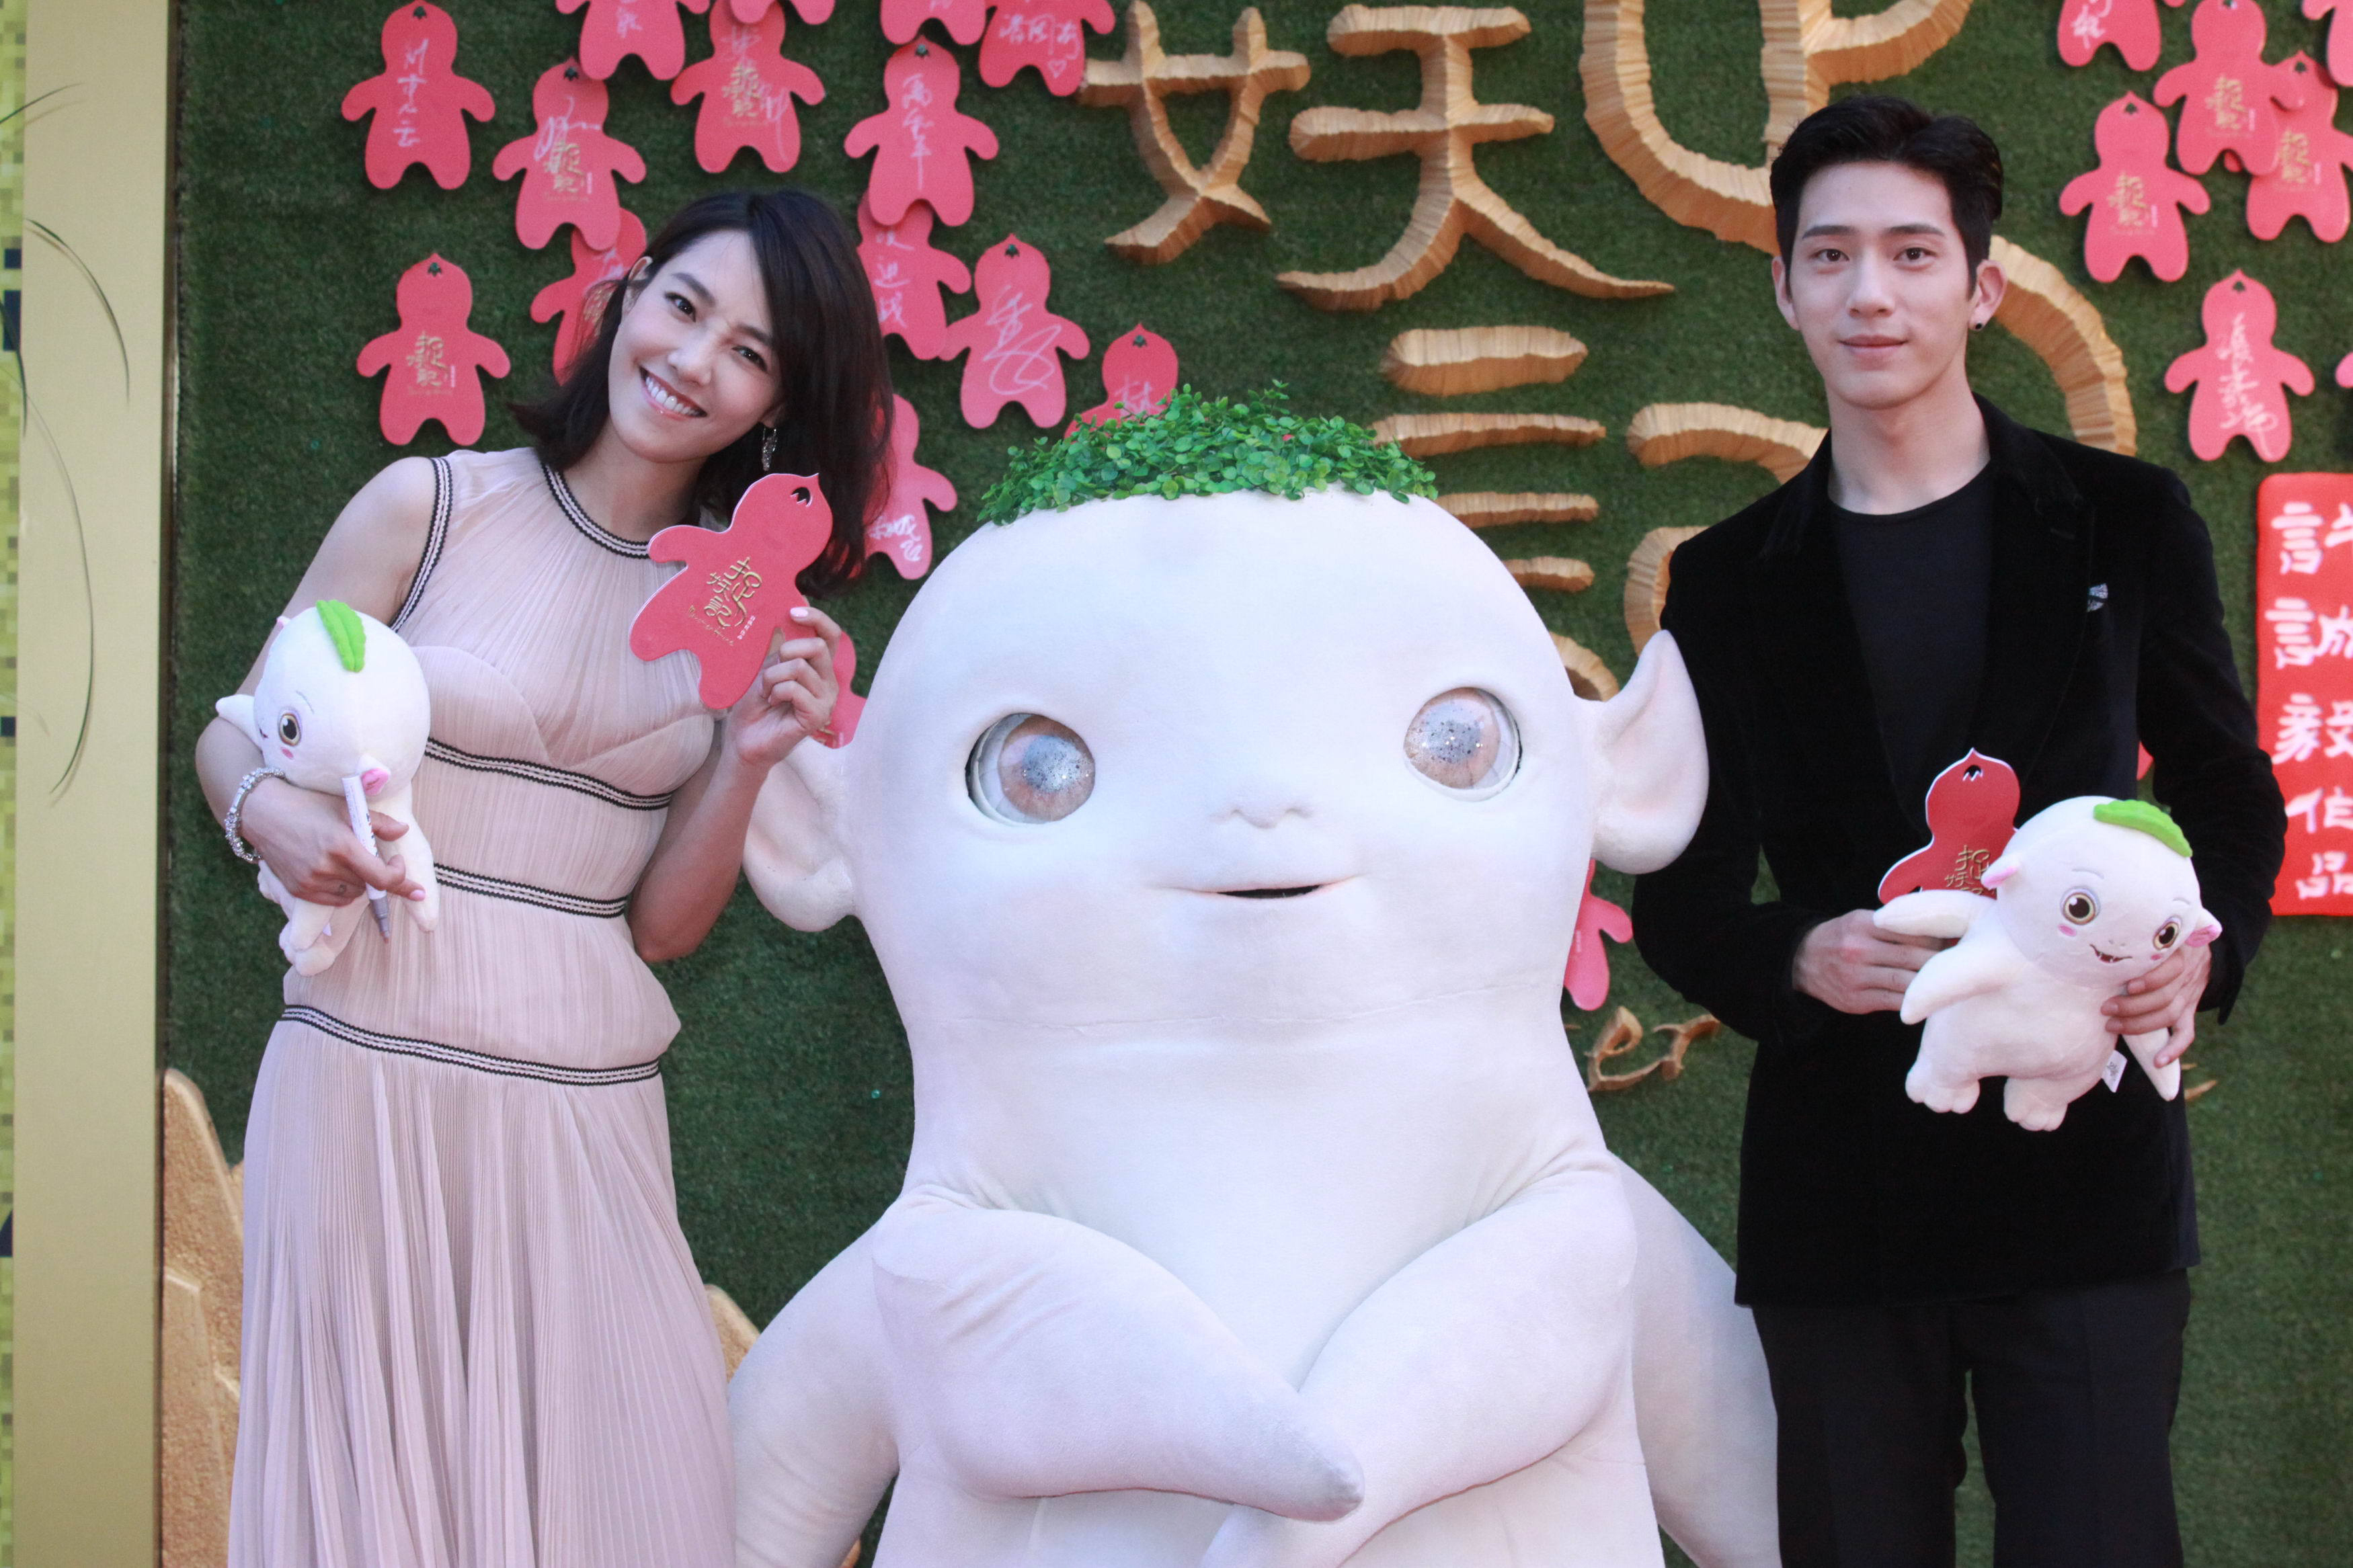 """BEIJING, CHINA - JULY 5: (CHINA OUT) Actress Bai Baihe and actor Jing Boran arrive at the red carpet for the premiere of new film """"Monster Hunt"""" directed by Xu Chengyi on July 5, 2015 in Beijing, China. (Photo by ChinaFotoPress)***_***"""